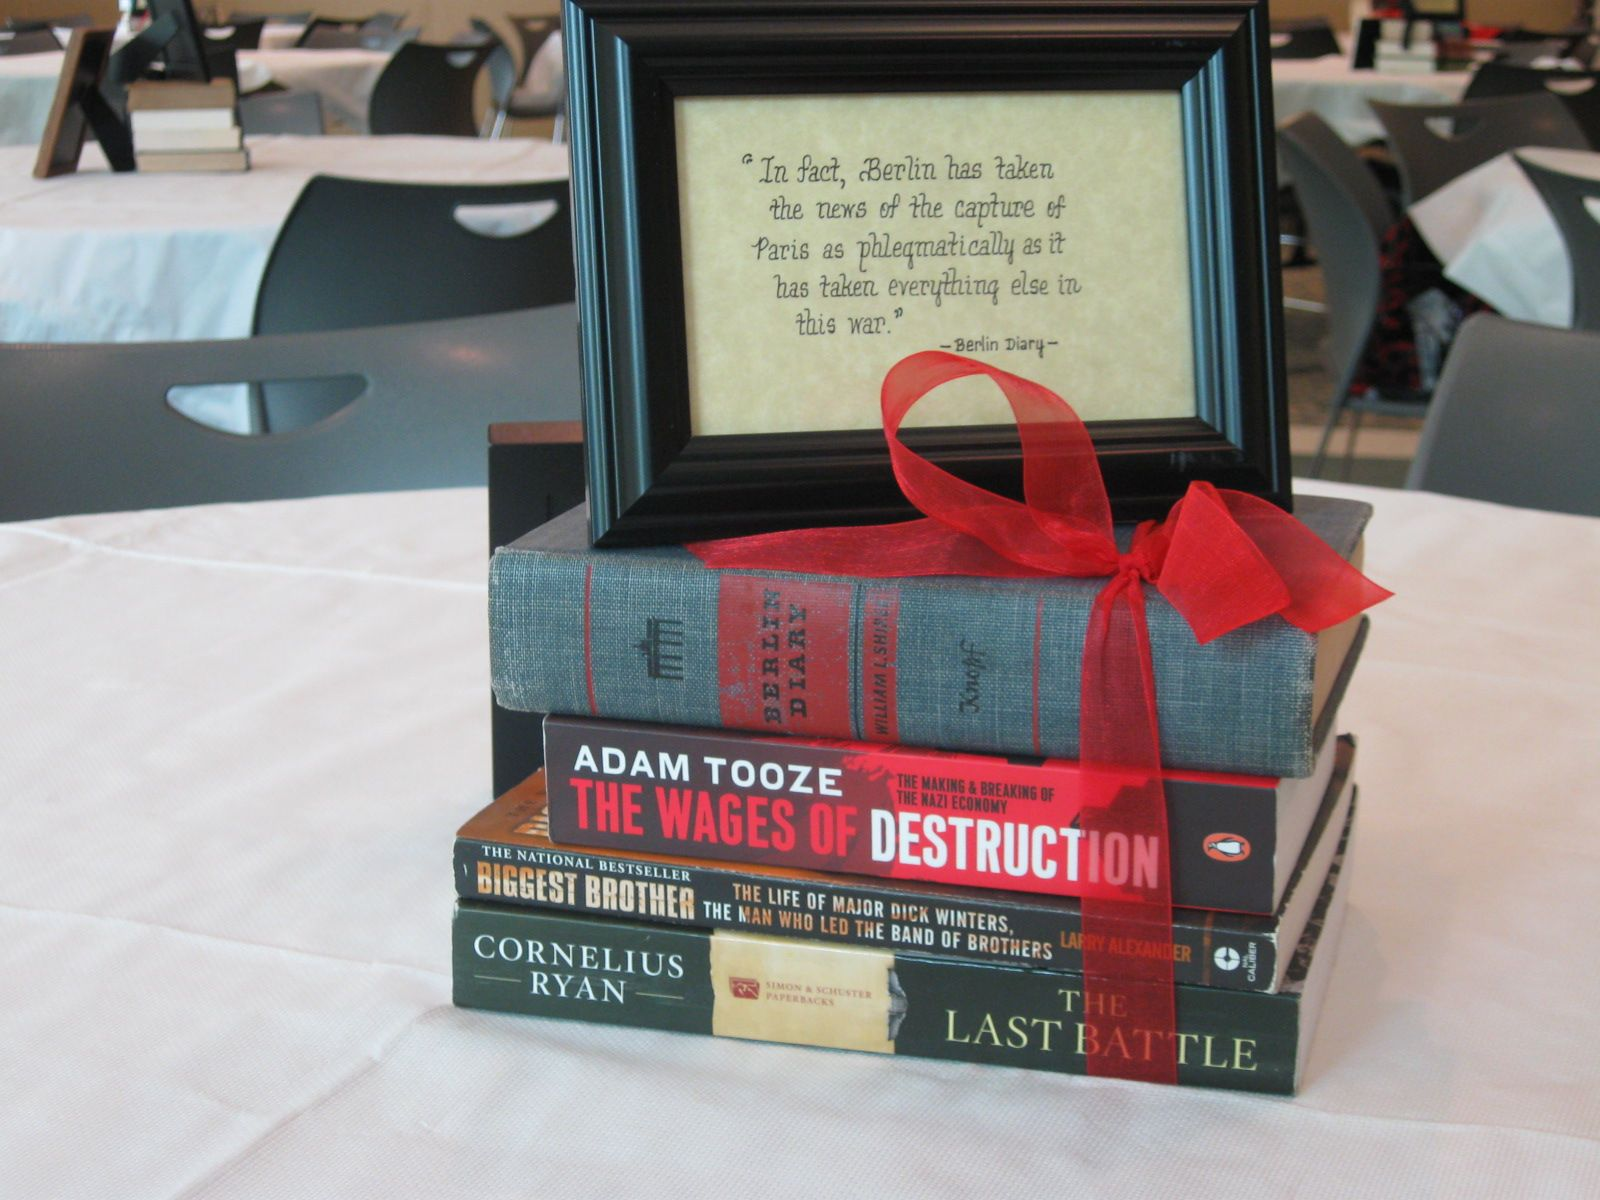 Candy centerpiece ideas special centerpiece ideas for graduation - Cute Idea For Graduation Party Use Books As Centerpiece With Quote Tie With